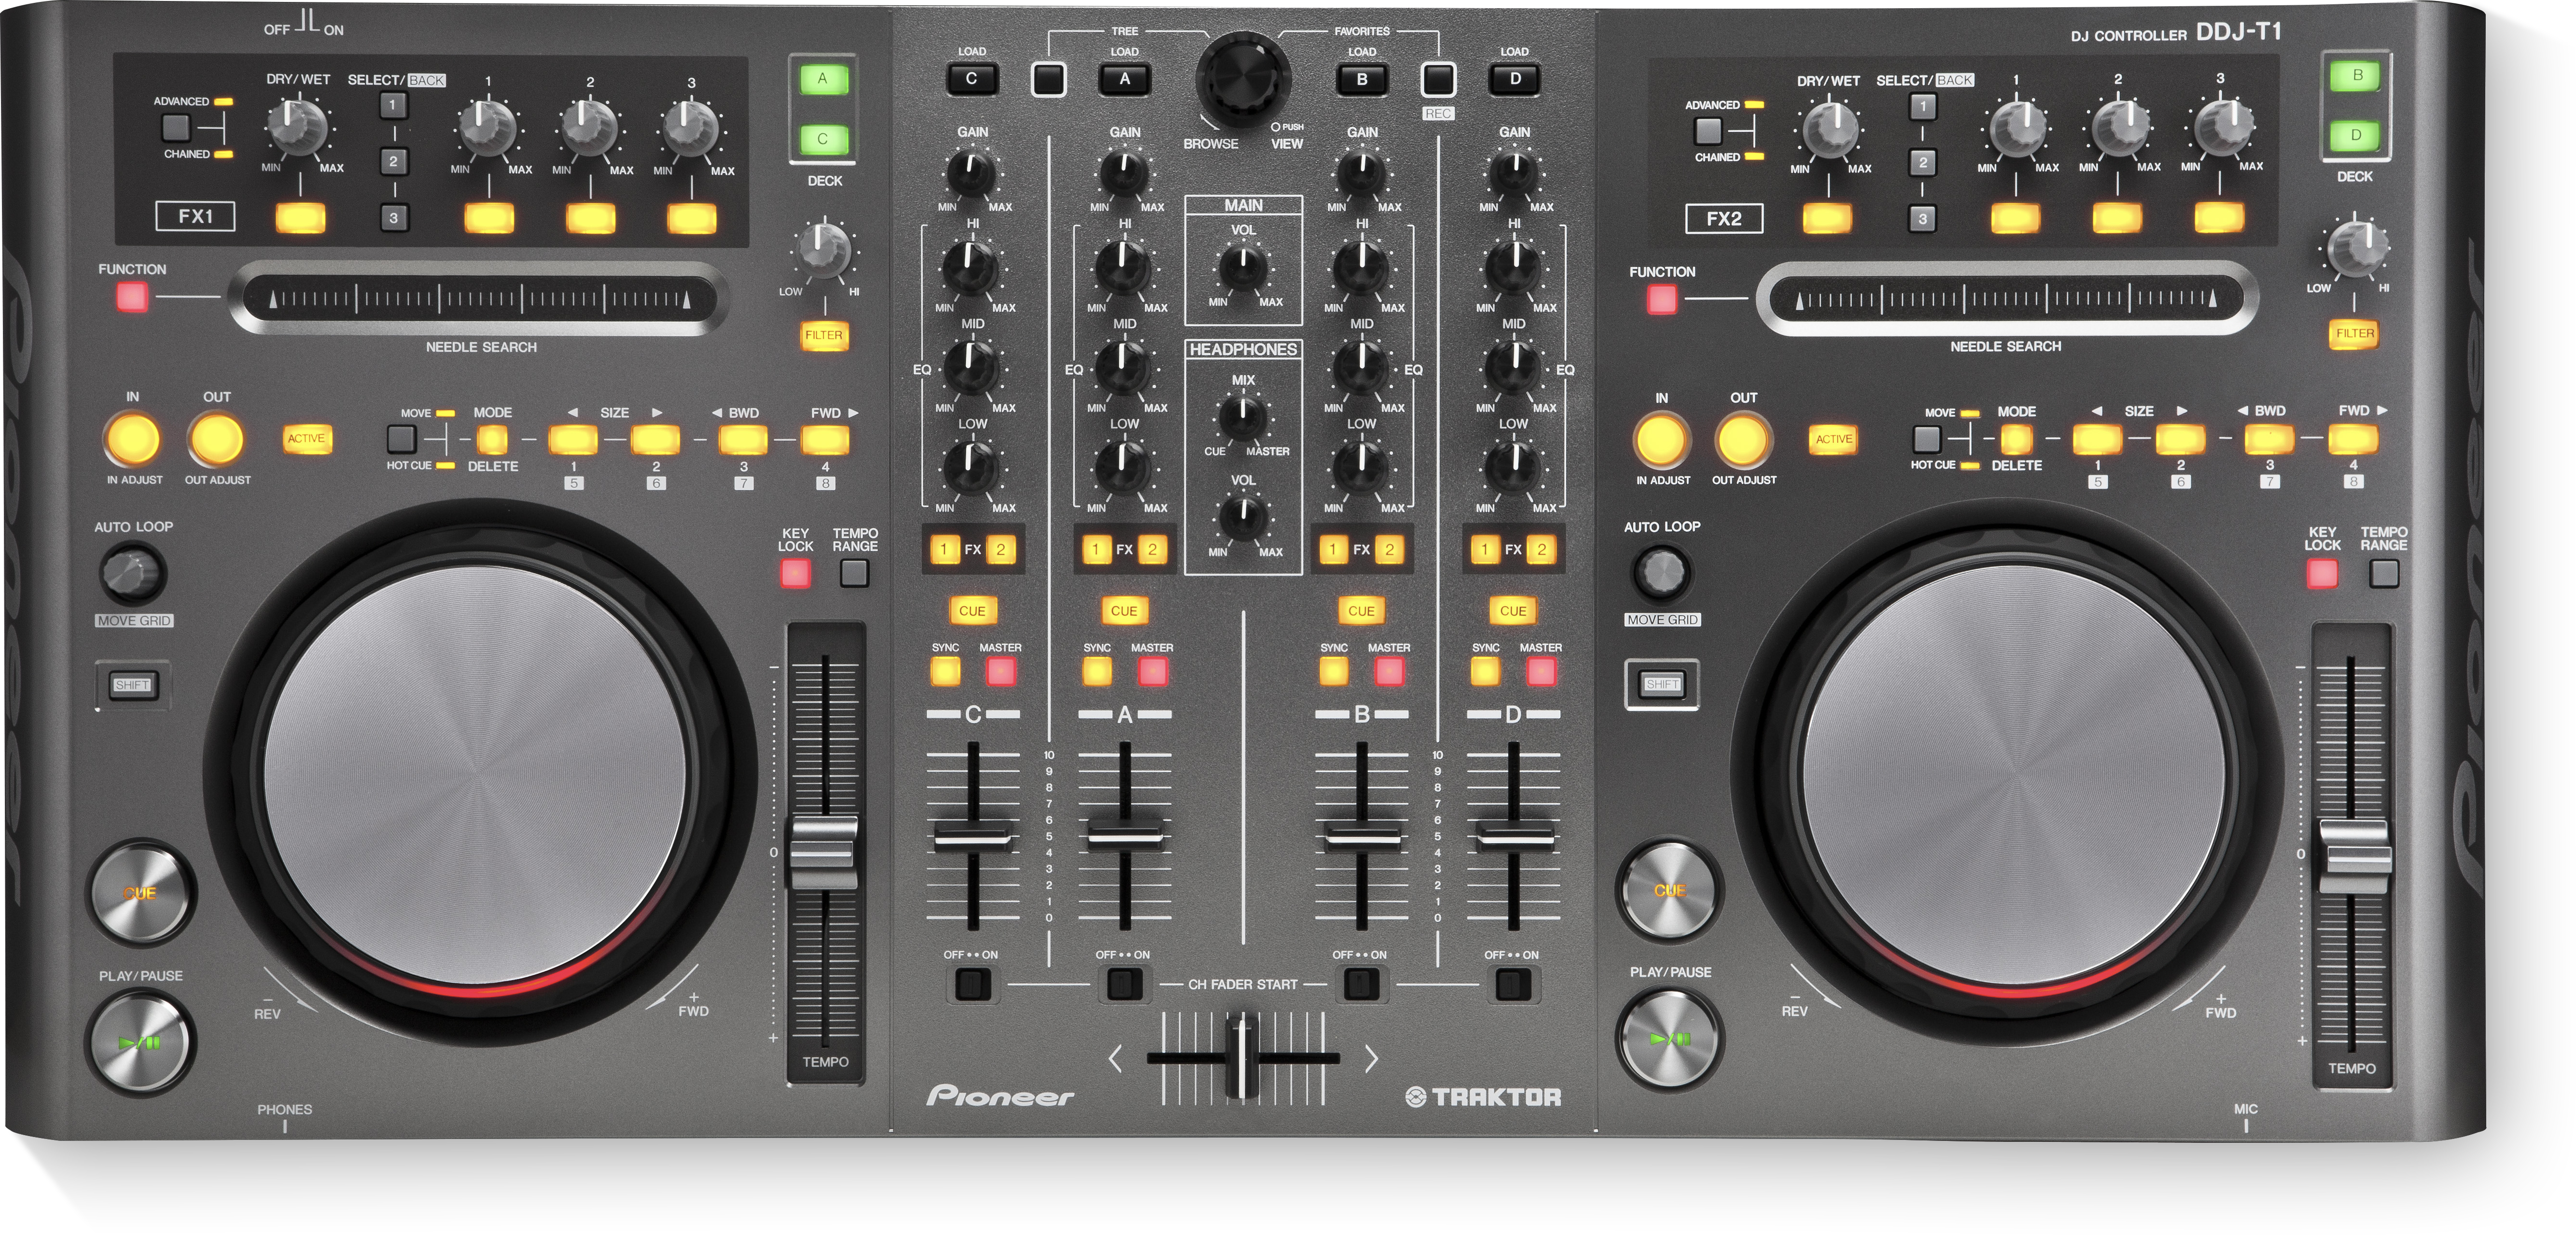 Download firmware or software for DDJ-T1 - Pioneer DJ - Global